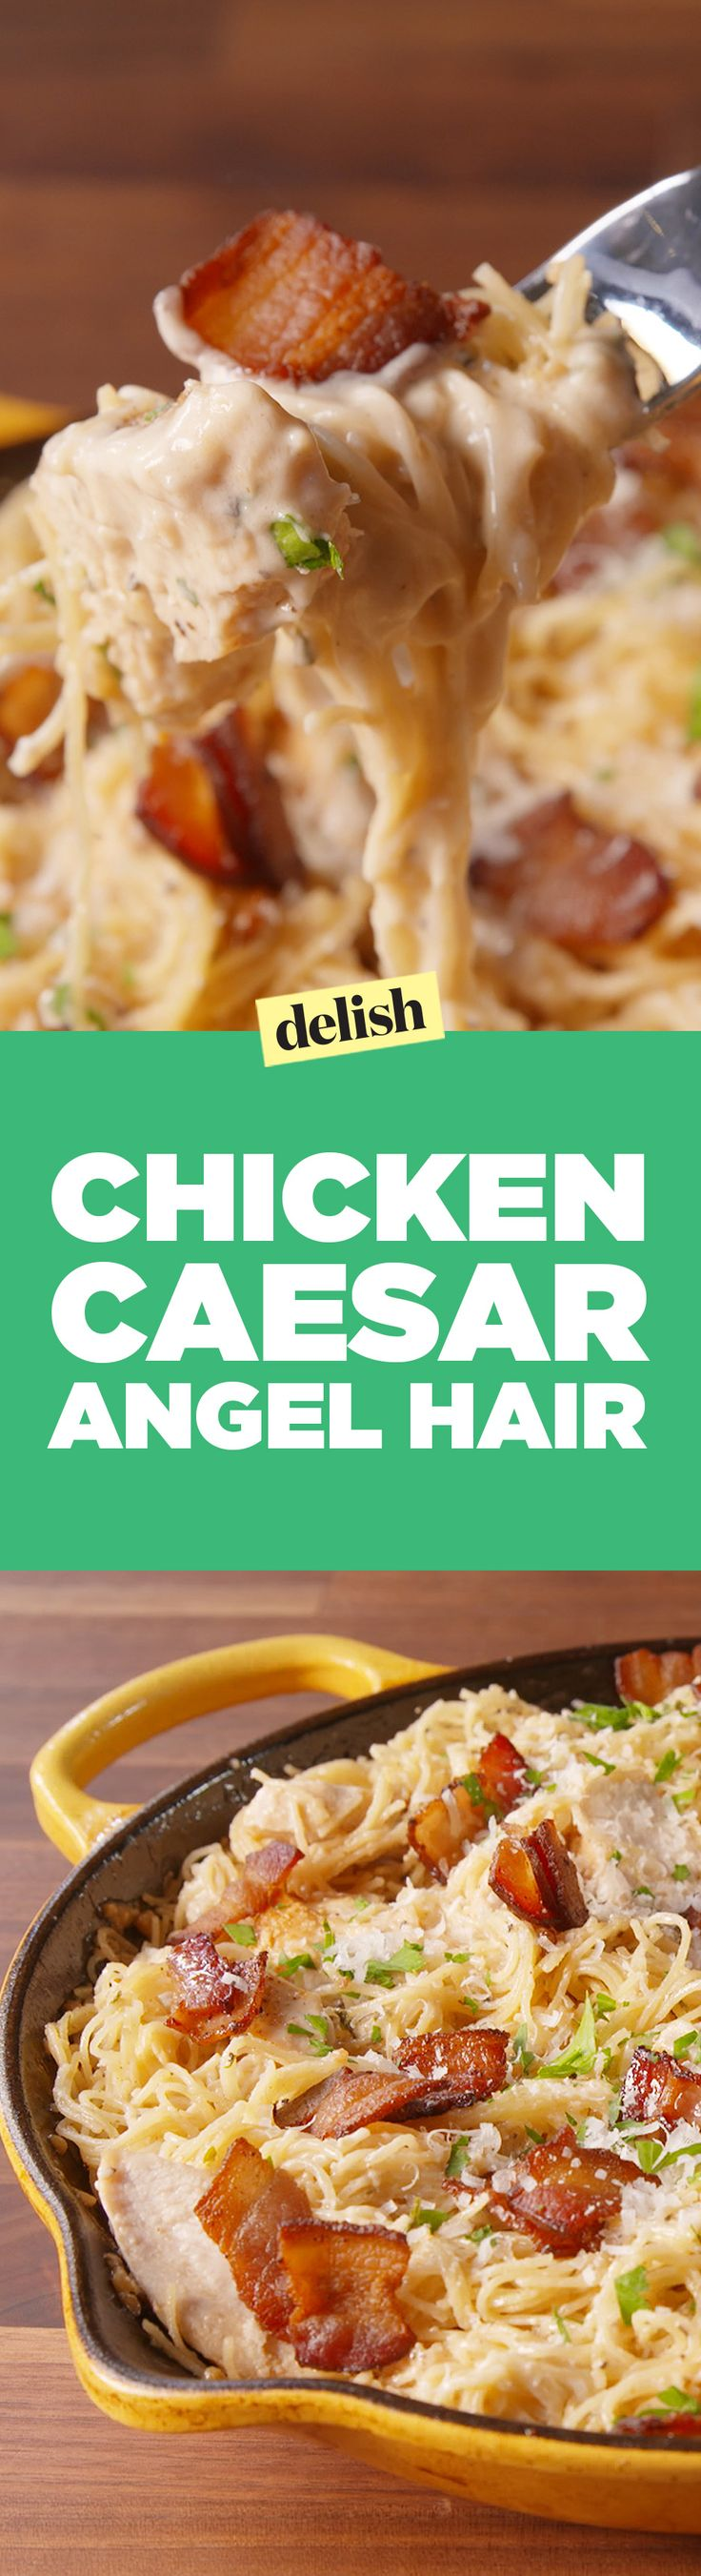 Chicken caesar angel hair will make want to put caesar dressing on everything. Get the recipe on Delish.com.